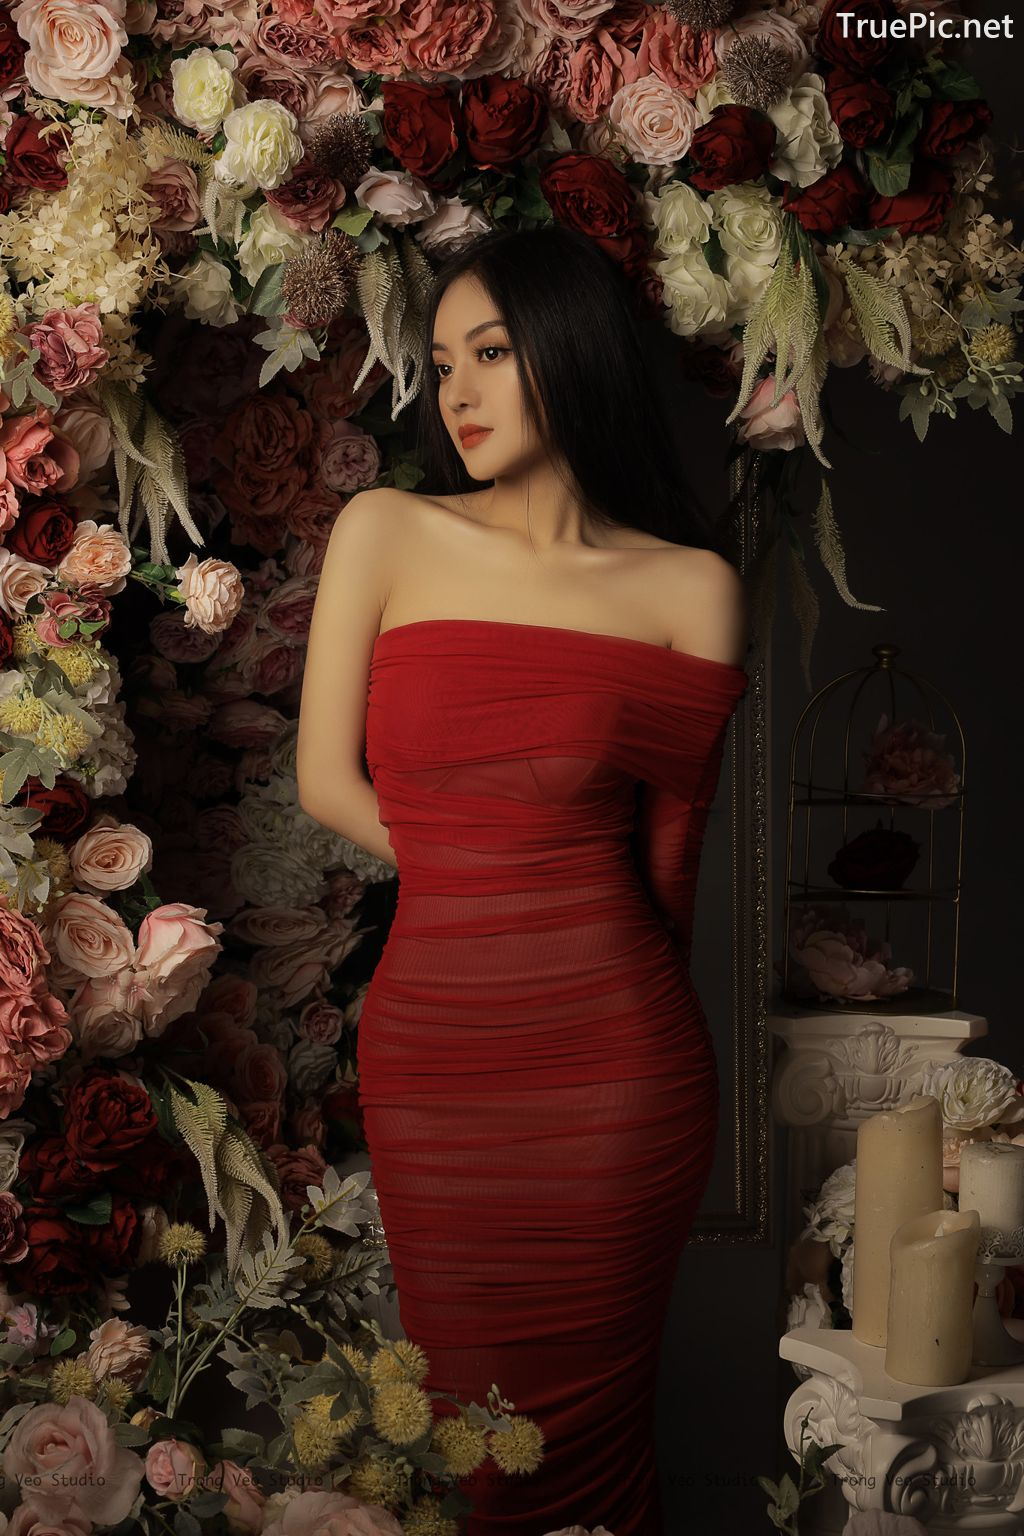 Image Vietnamese Model - Beautiful Girl and Flowers - TruePic.net - Picture-9